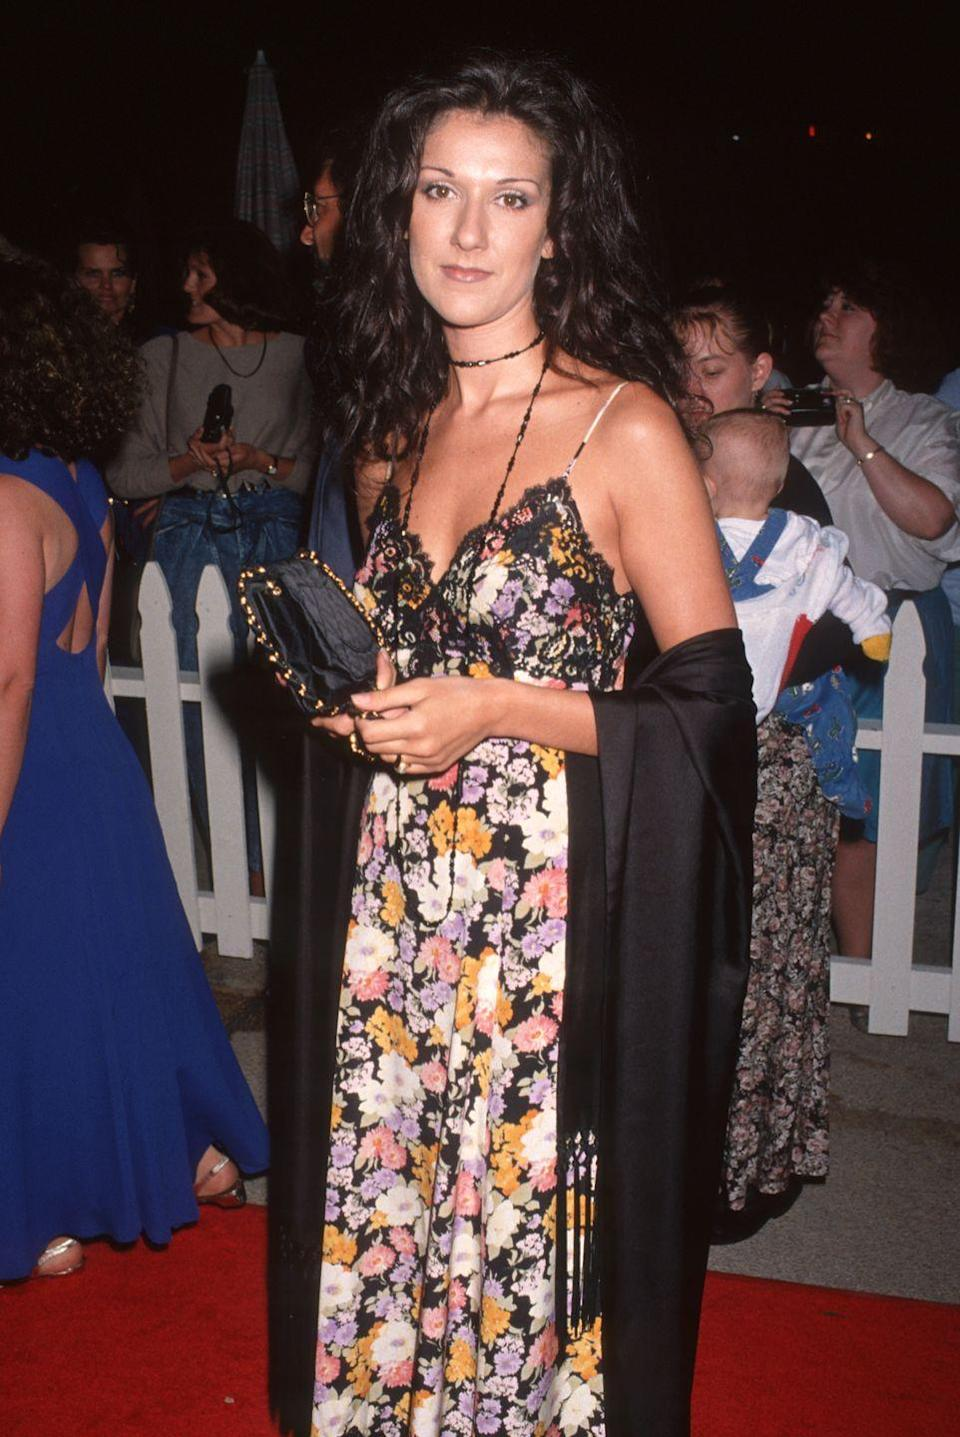 <p>Serving up a major '90s moment, the singer wore a floral maxi dress, long black shawl, and choker to the premiere of <em>Sleepless in Seattle</em>. </p>